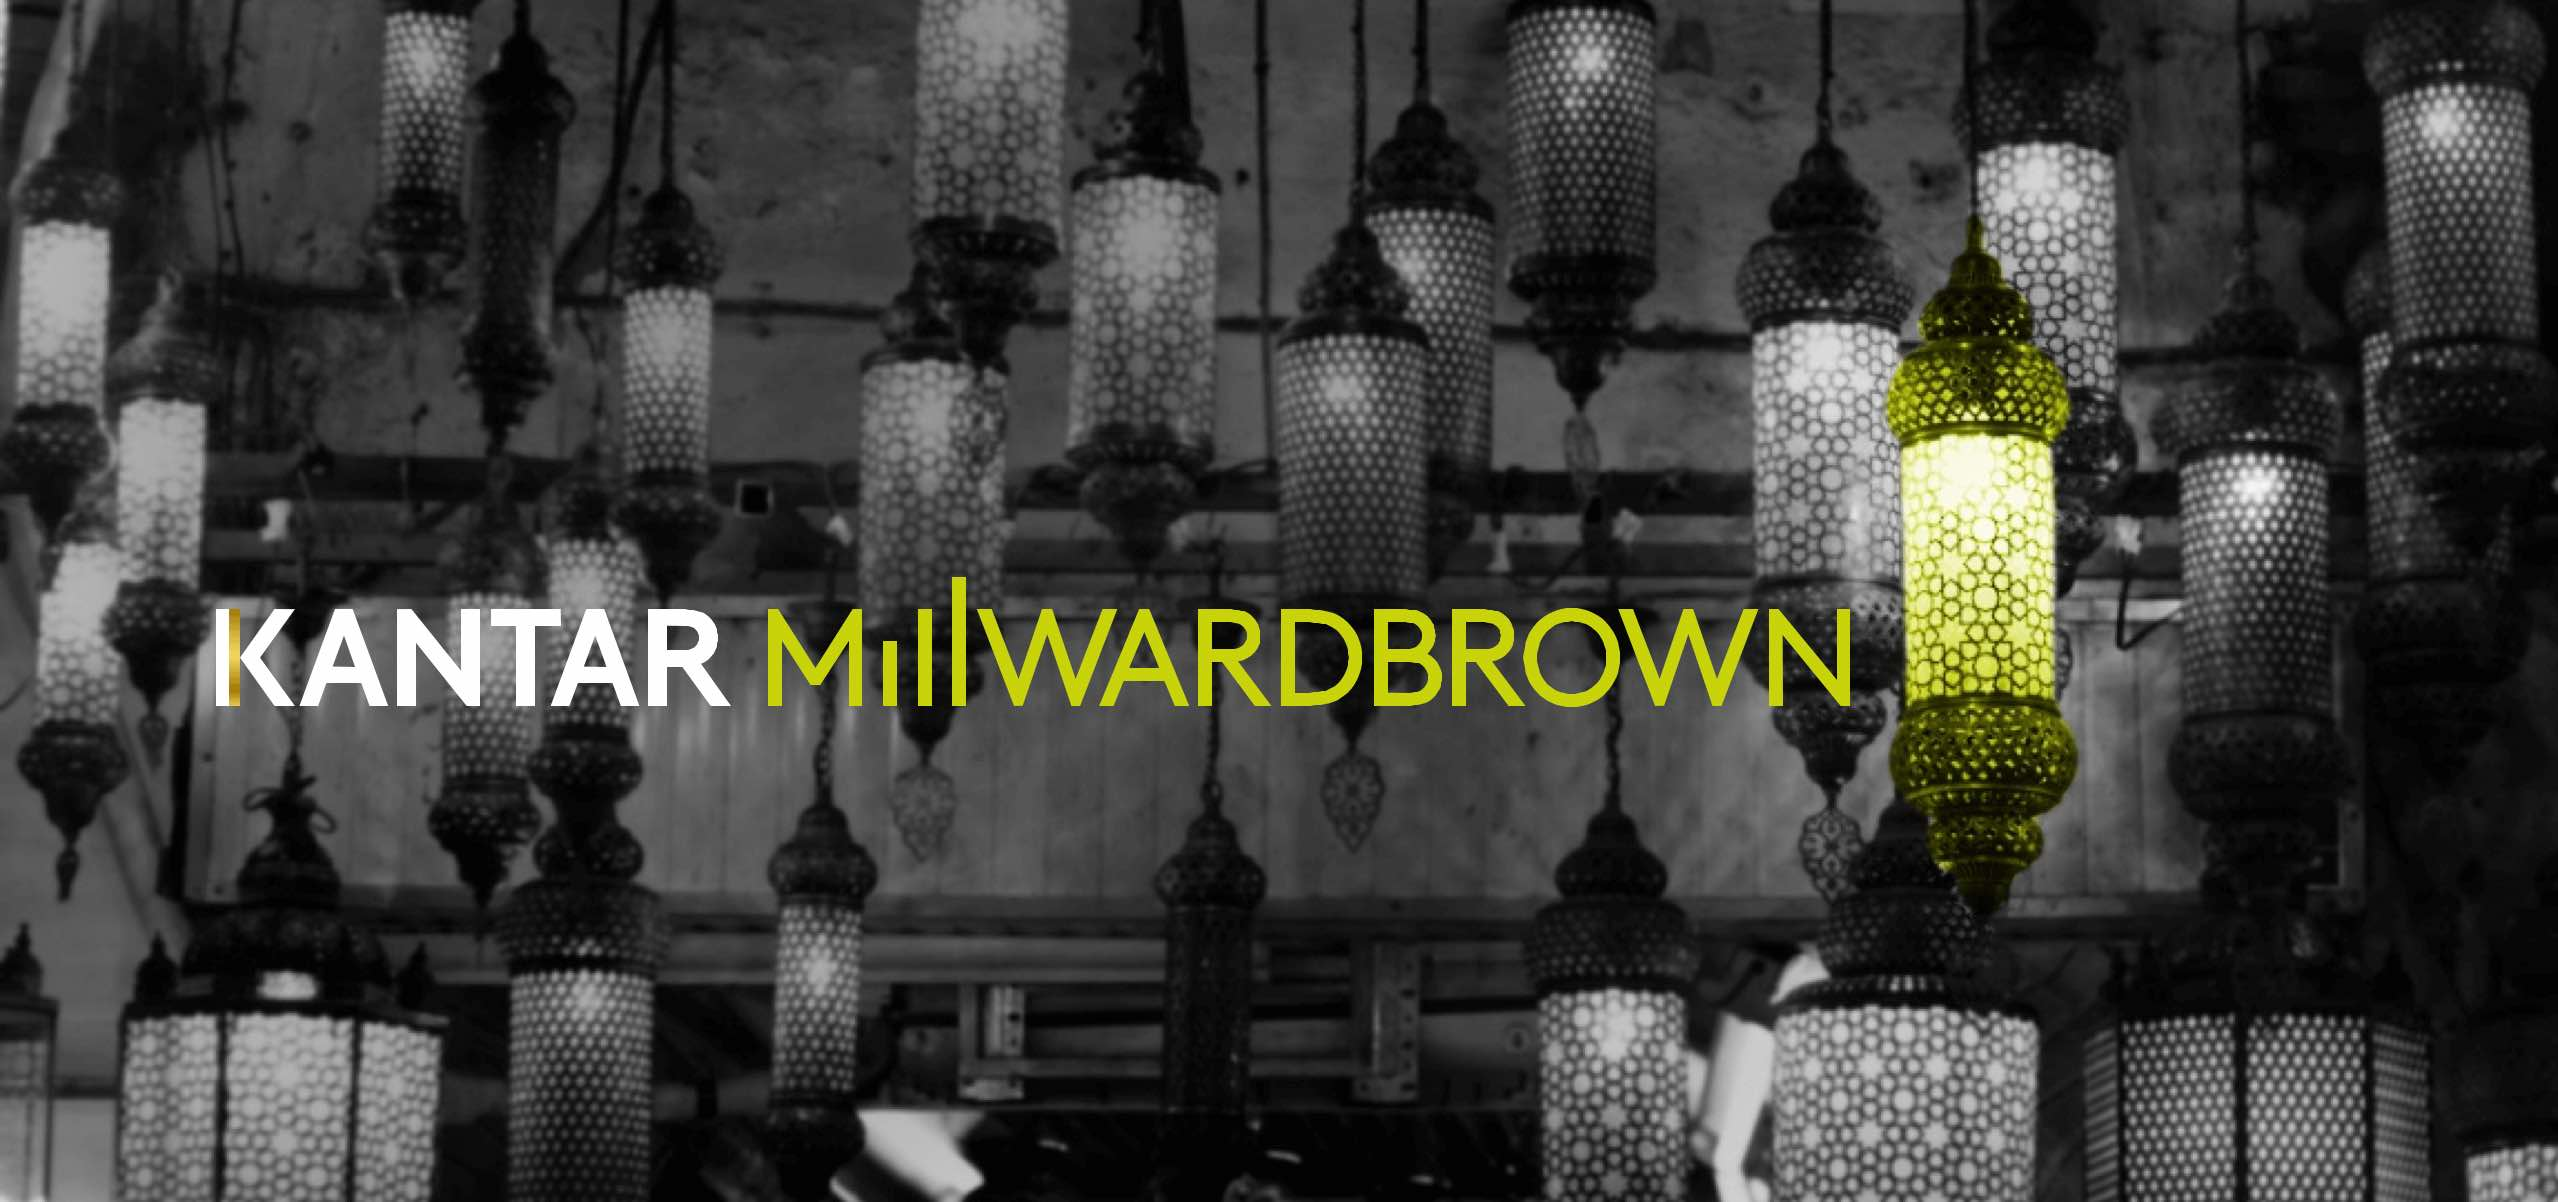 Kantar Millward Brown s'implante au Maroc